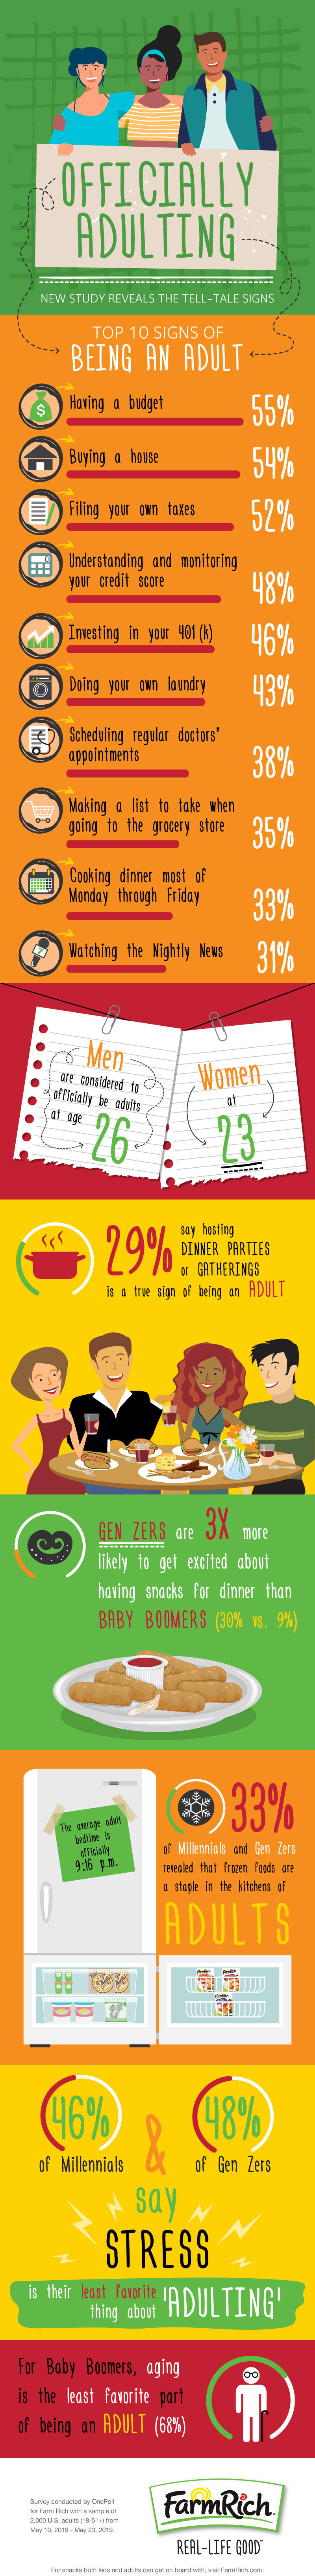 Signs of Adulting infographic